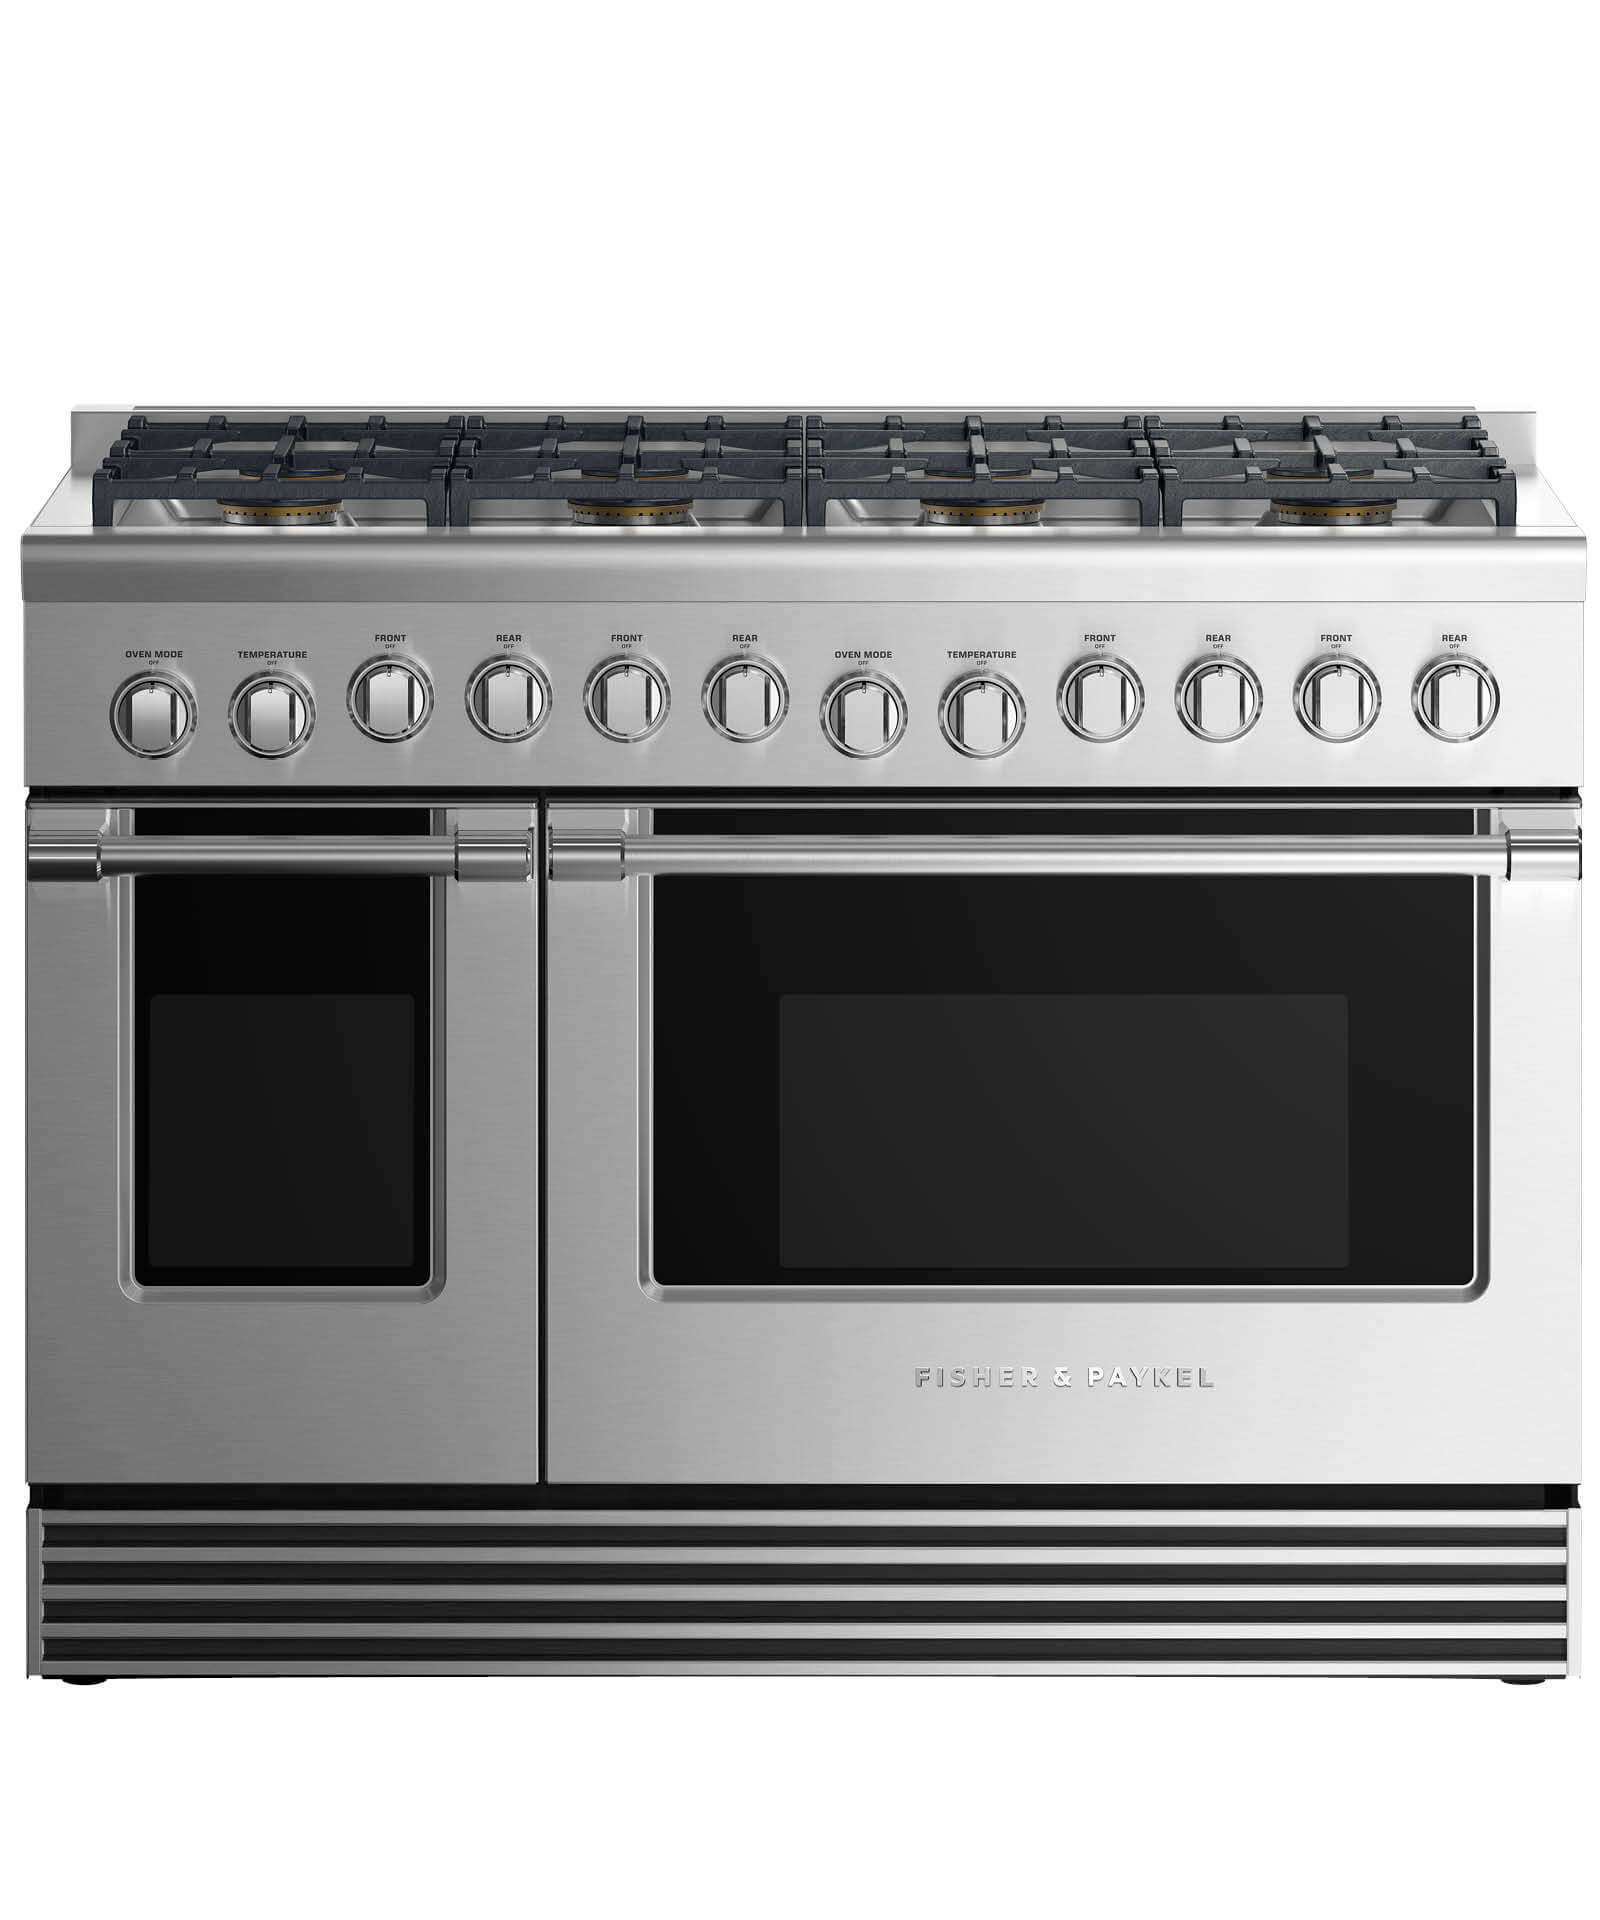 "Fisher and Paykel Gas Range 48"", 8 Burners"